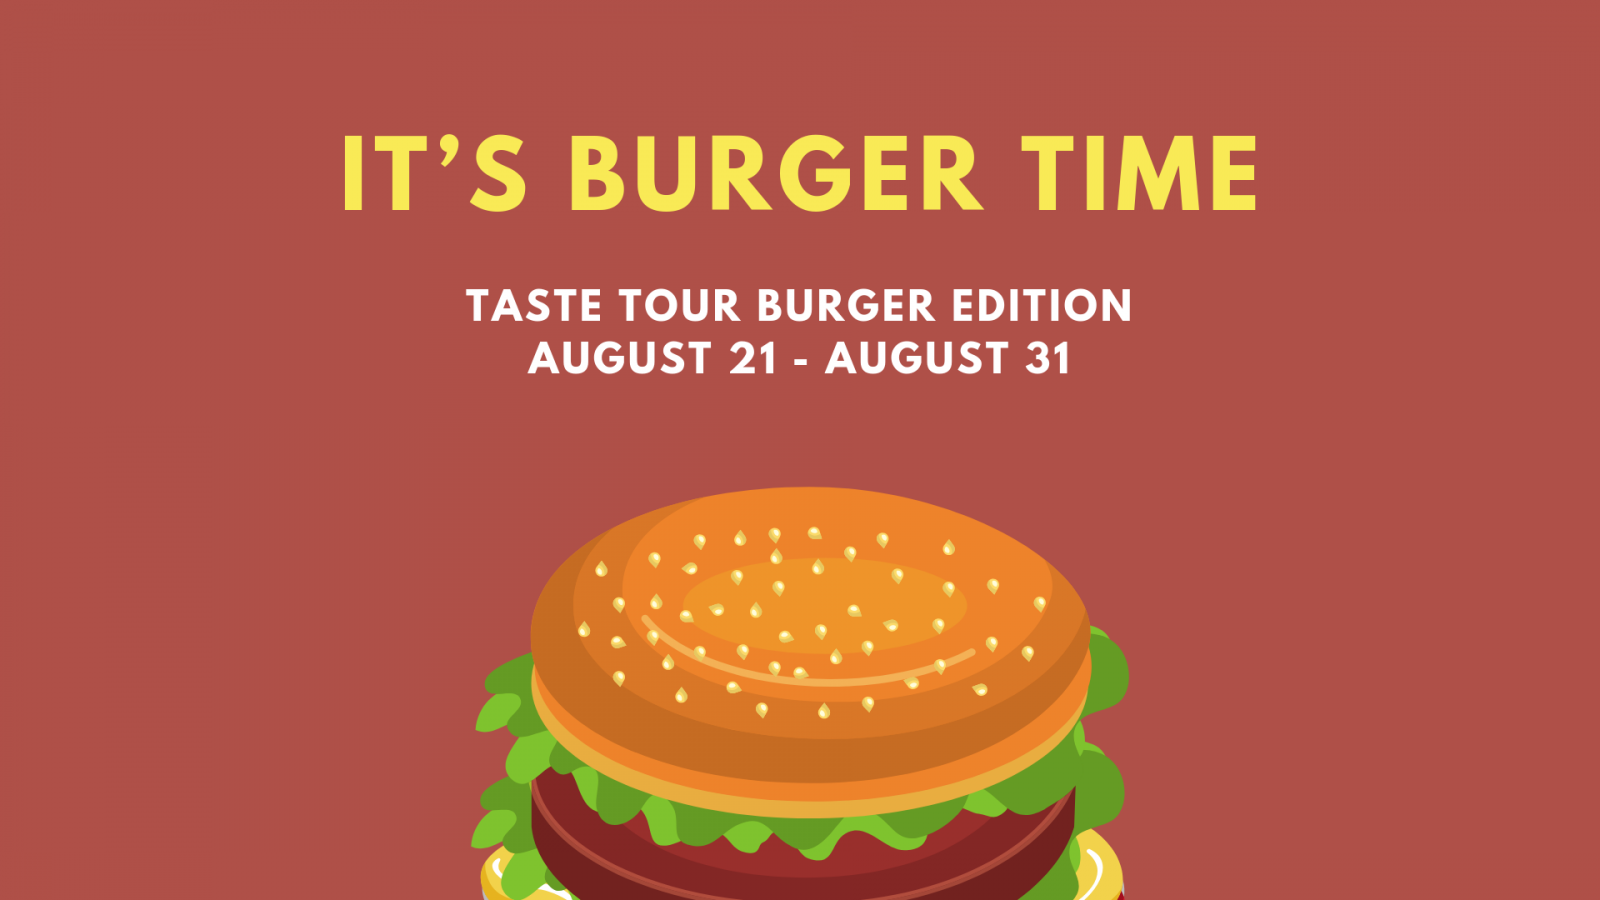 Get ready to feast on BURGERS!